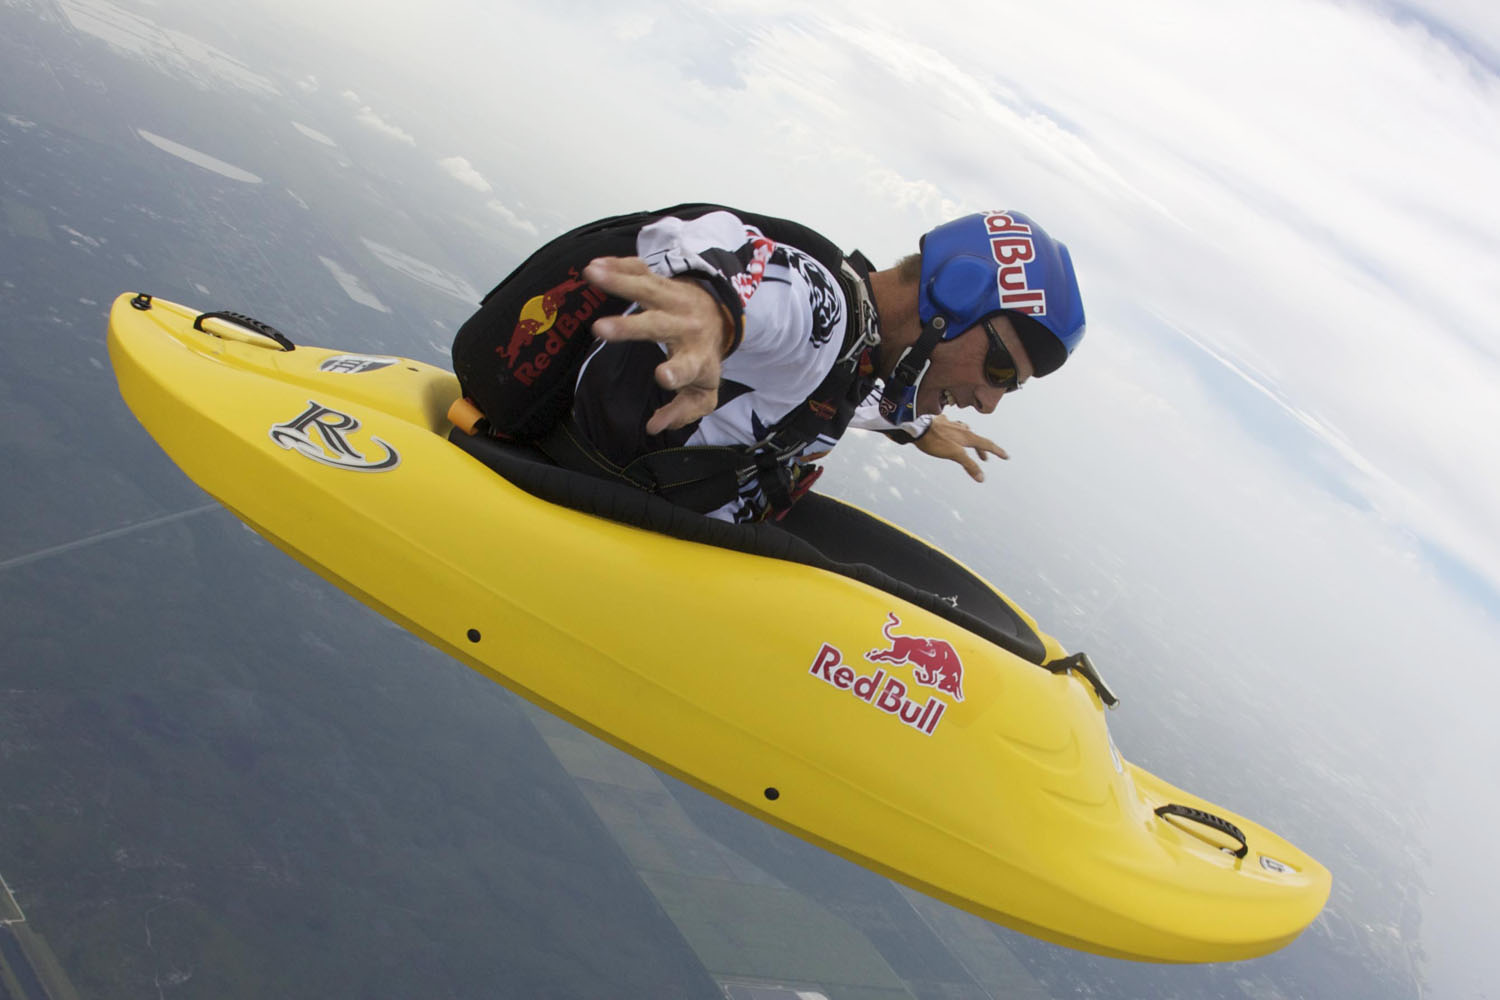 Miles Daisher Skyaking in freefall in Sebastian, Florida. Danger man Miles Daisher casts a bizarre image paddling across the sky - 13,000 feet up in a KAYAK.